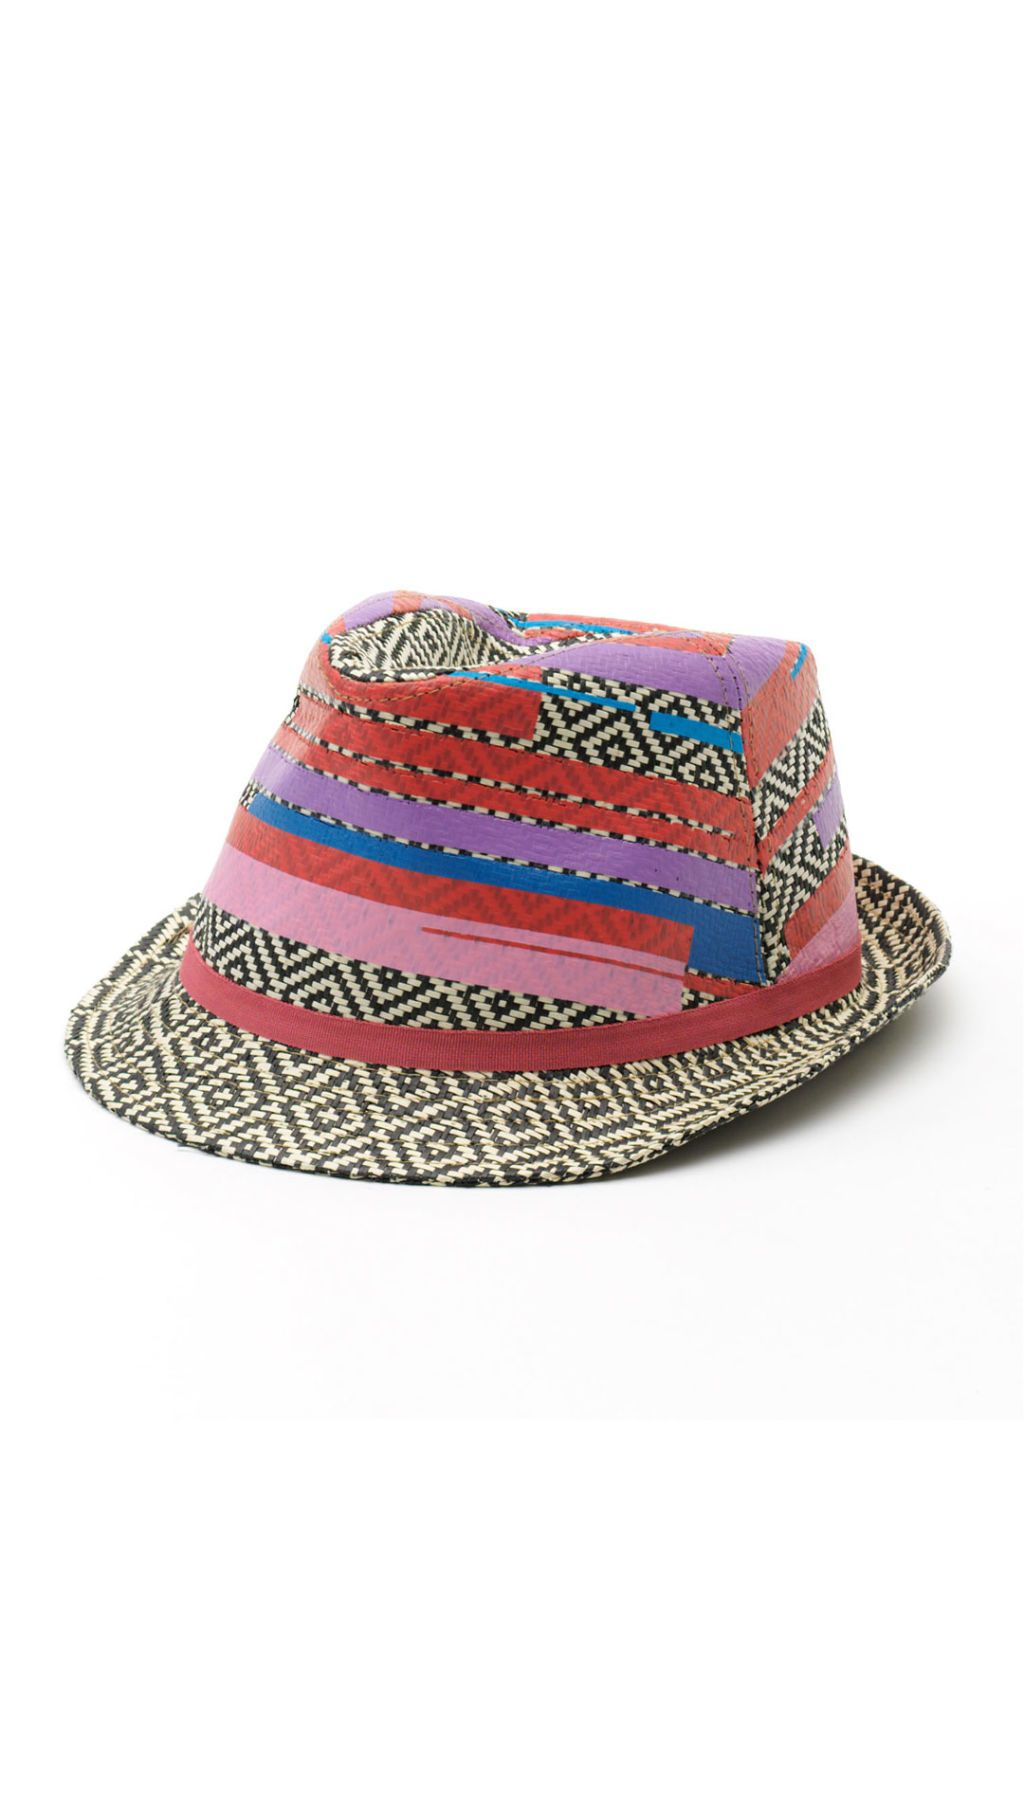 Cute Summer Hats for Women - Stylish Womens Floppy Sun Hats and Fedoras c36d2a8bd36